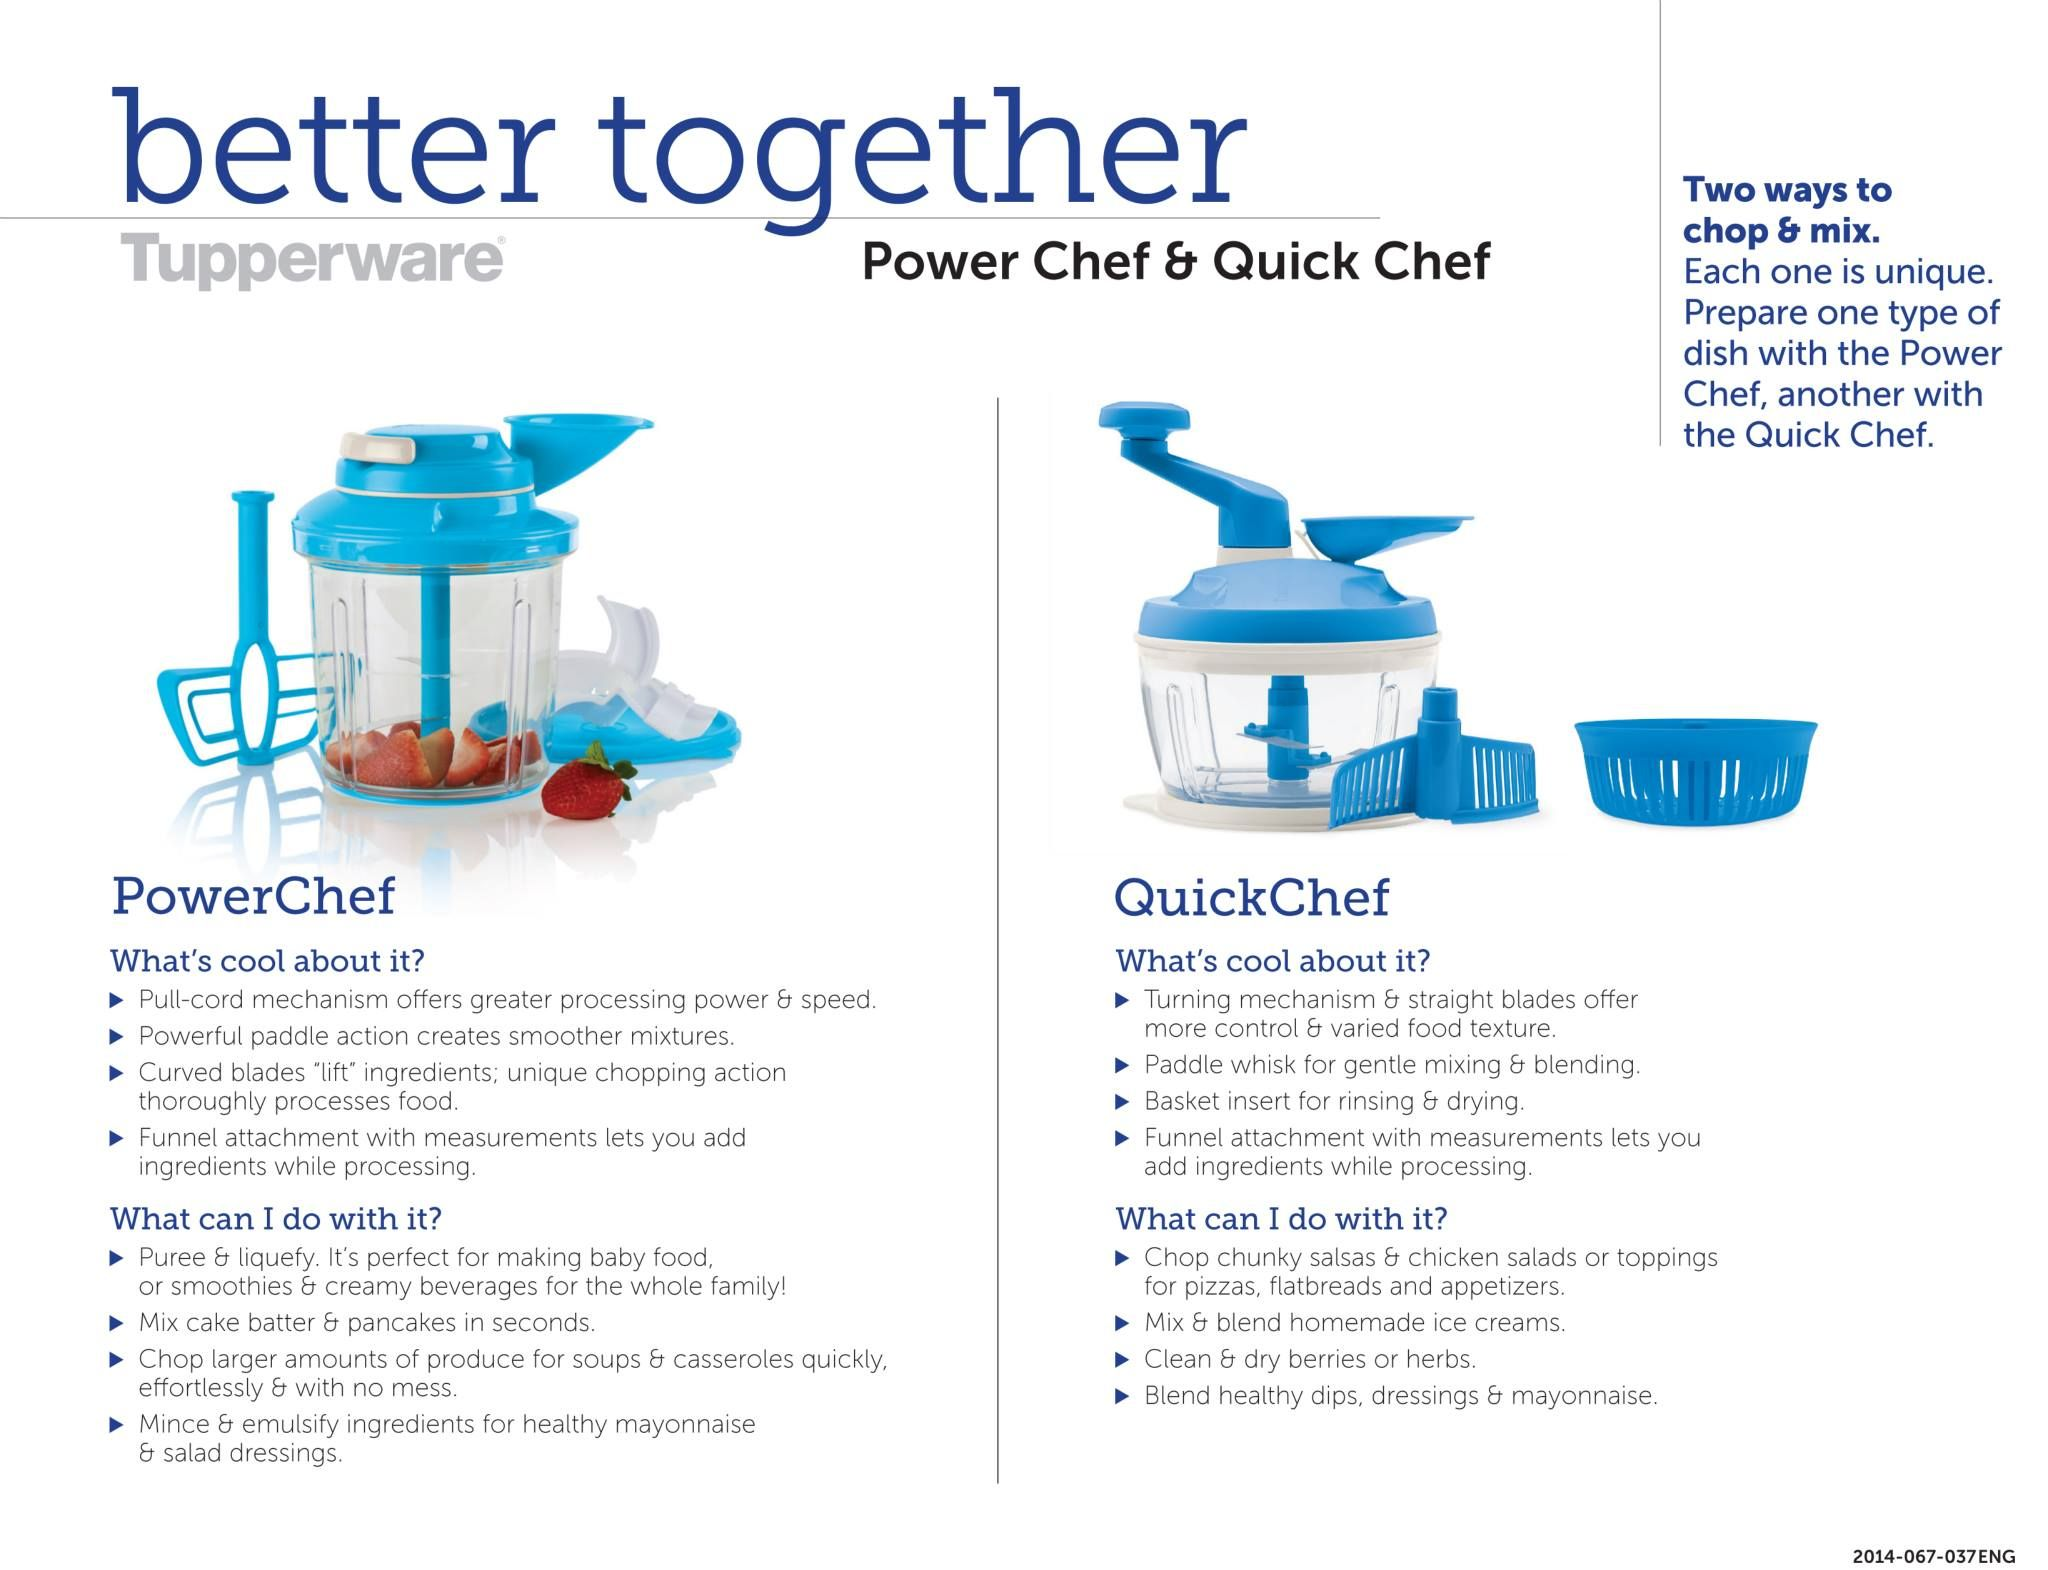 Pin by Candy Slabaugh on Tupperware Power Chef & Quick